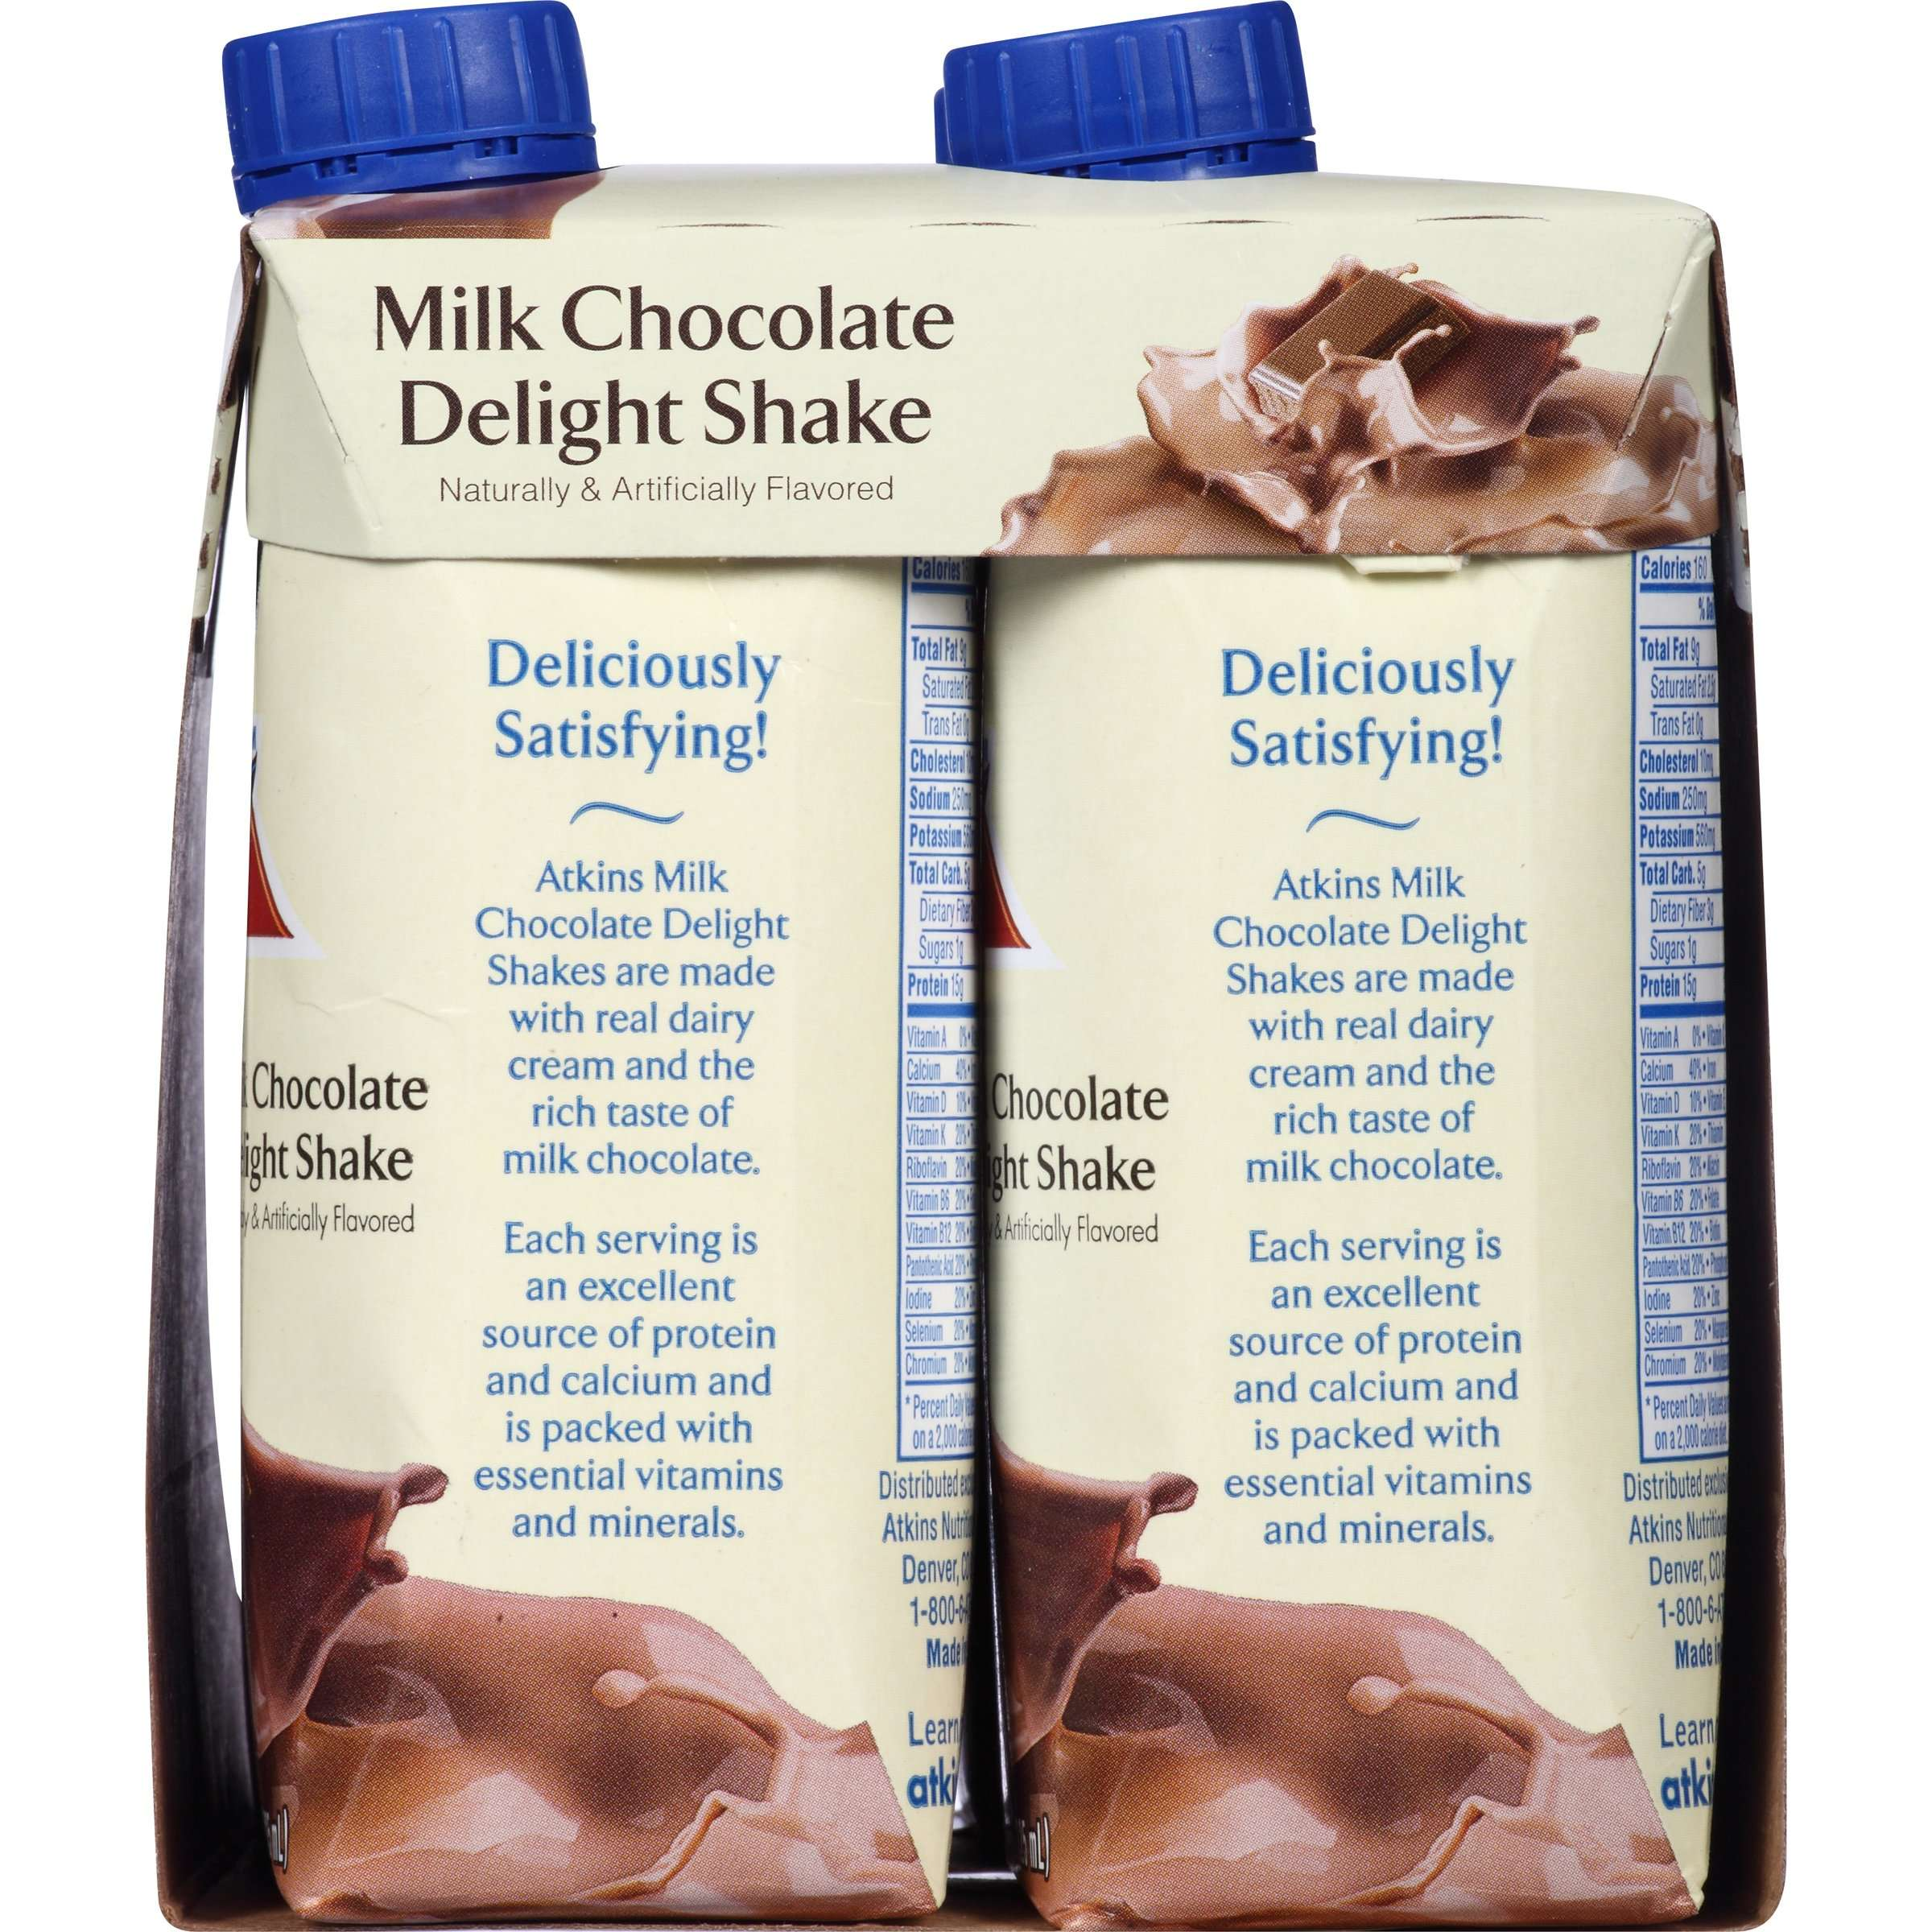 Atkins Milk Chocolate Delight Shake, 11Fl oz, 4-pack (Ready To ...